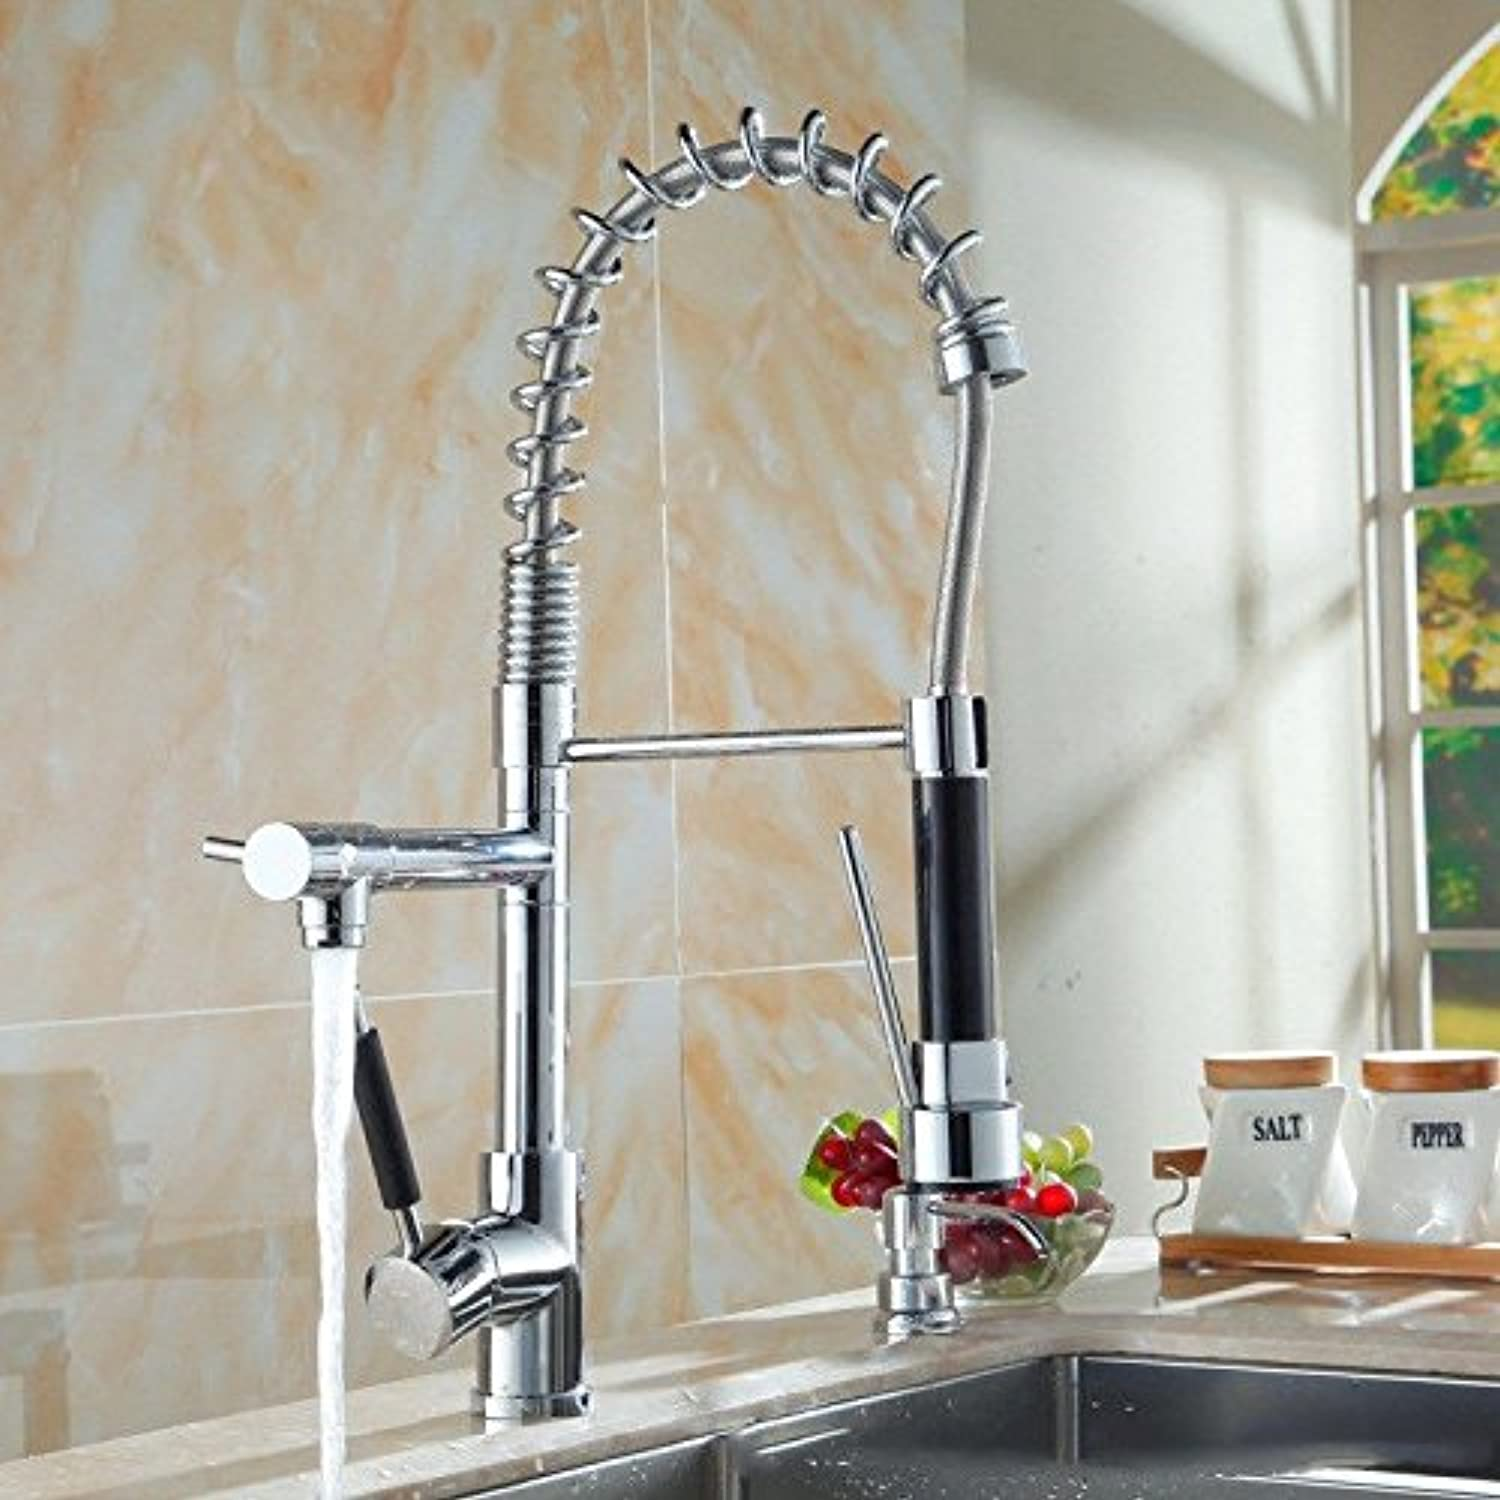 AQMMi Bathroom Sink Mixer Tap Hot and Cold Water Spring Pull-Out Spring Taps for Bathroom Sink